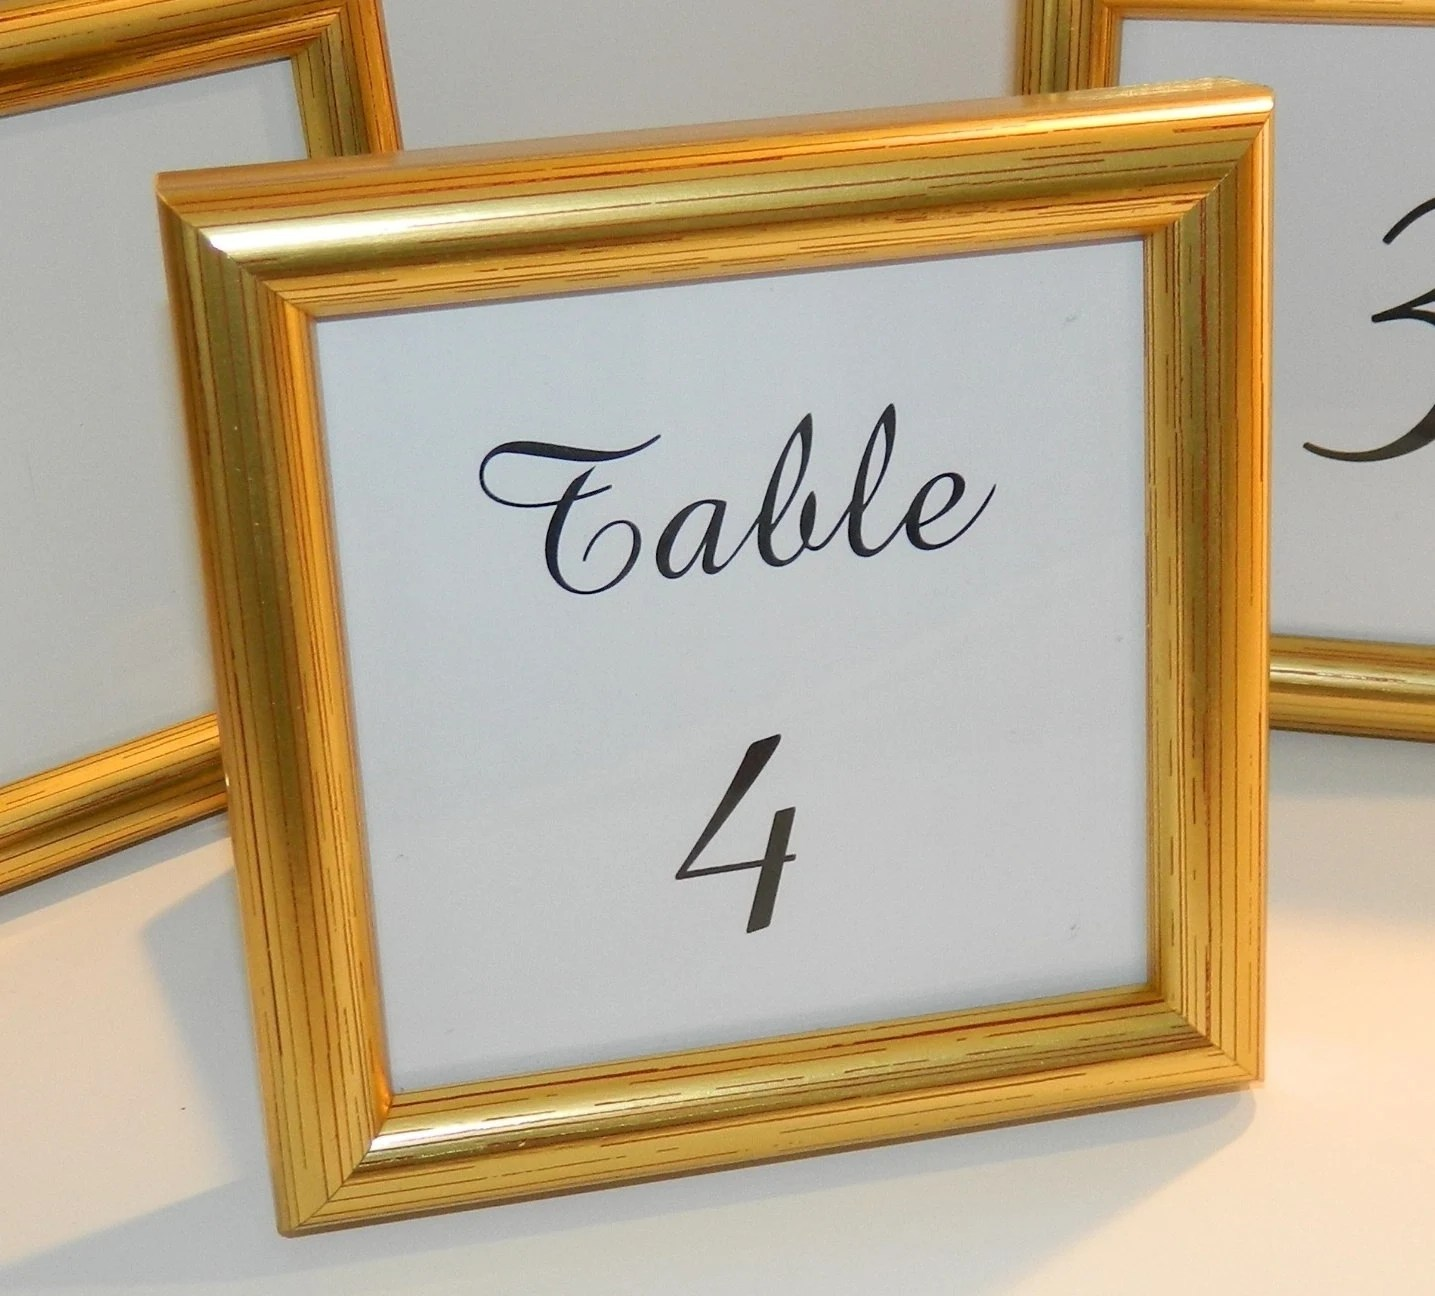 Congenial Magnets Small Frames Bulk Small G Frame Wedding Table Party Gifts Free Ship Small G Frame Wedding Table Party Favors Small Frames photos Small Picture Frames